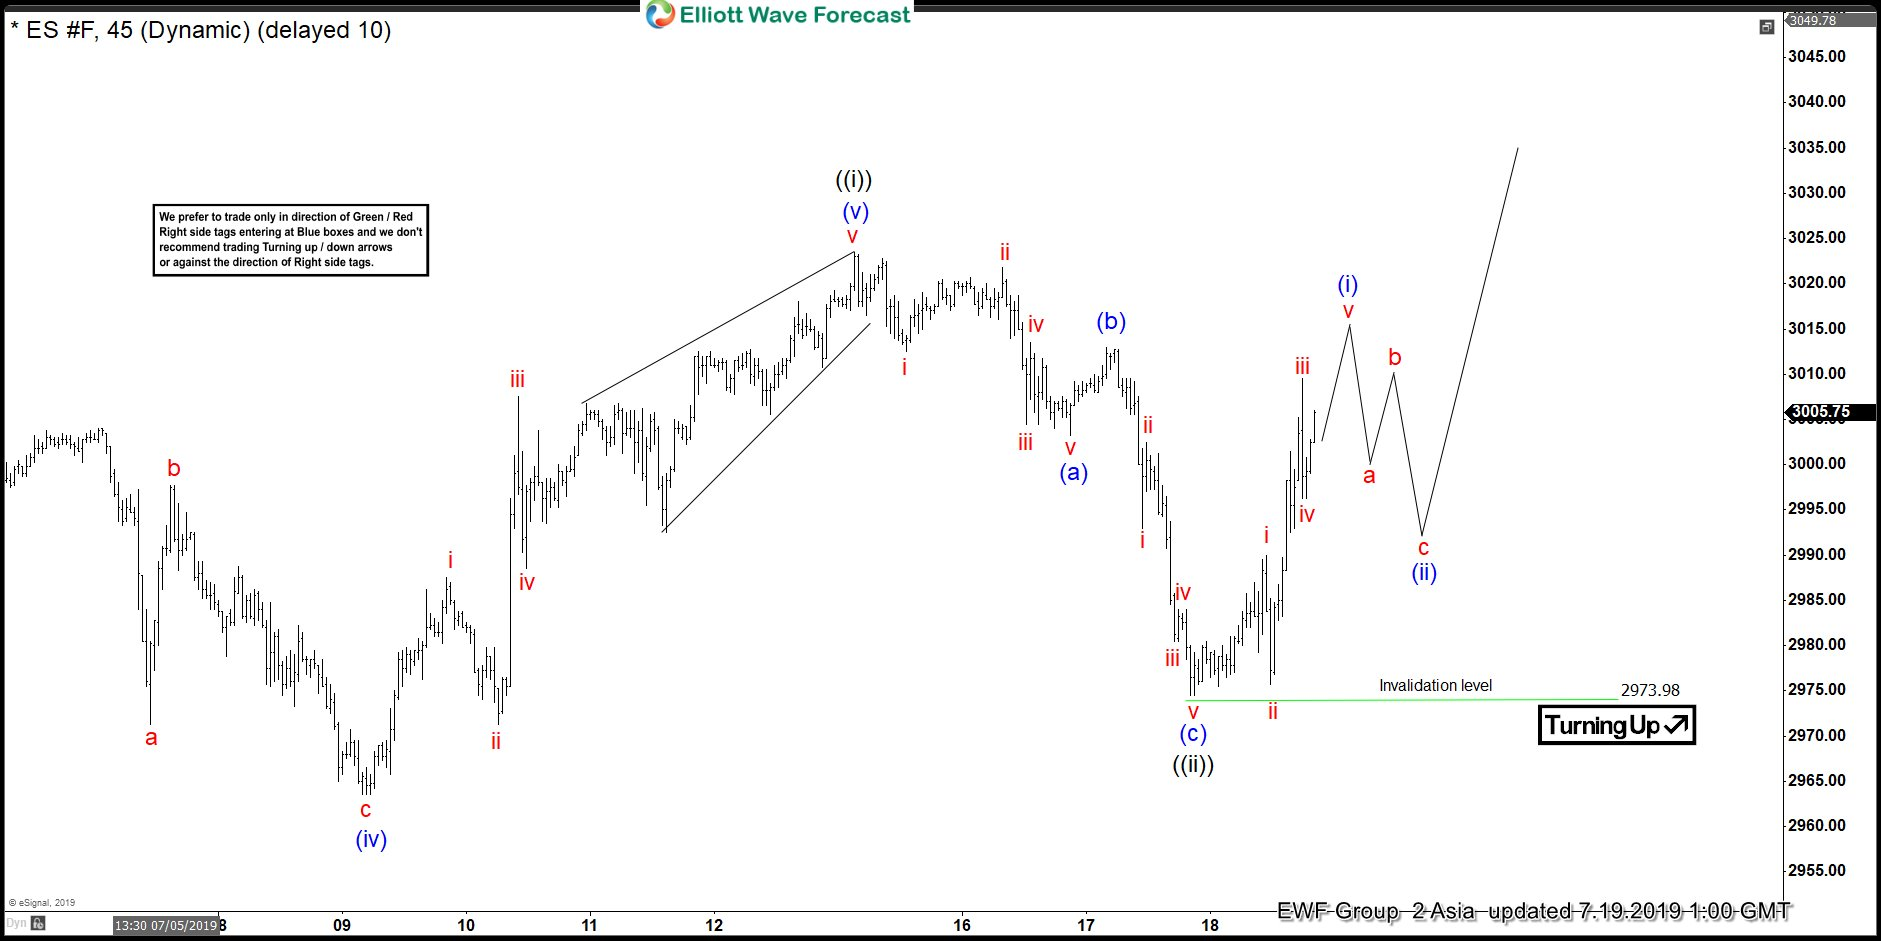 S&P 500 Futures (ES_F) Elliott Wave View: Correction Ended